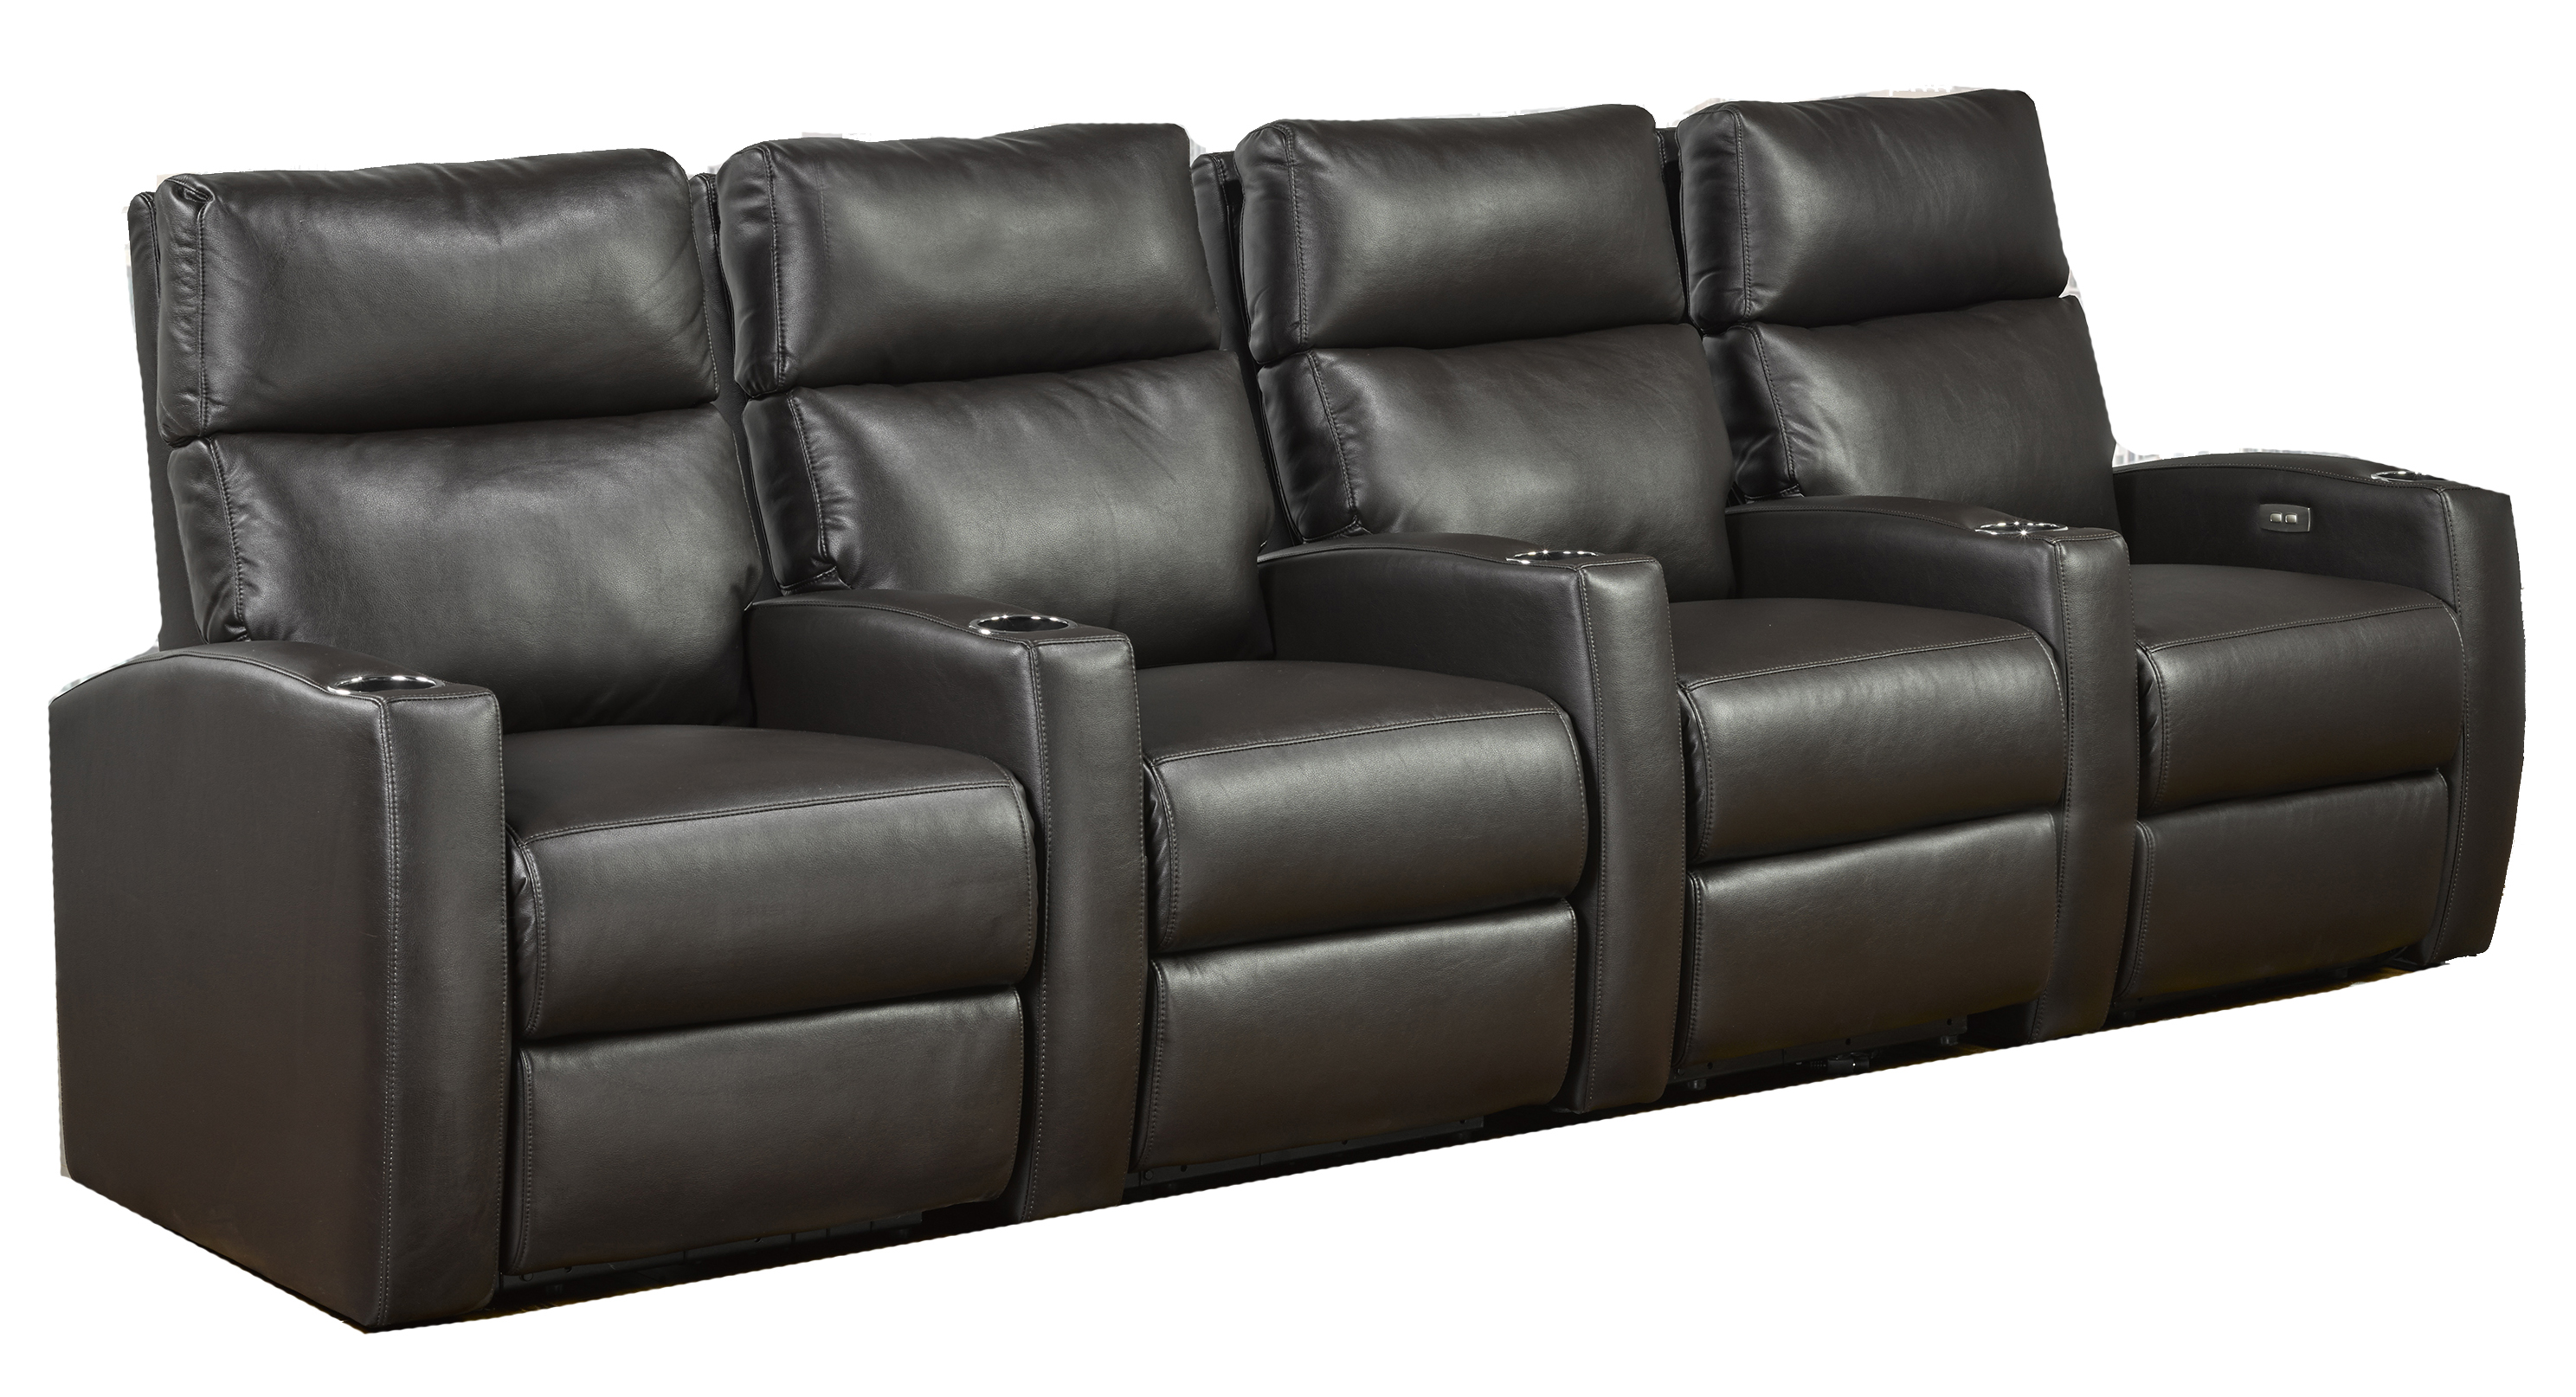 4-SEATER POWER HOME THEATRE - ESPRESSO